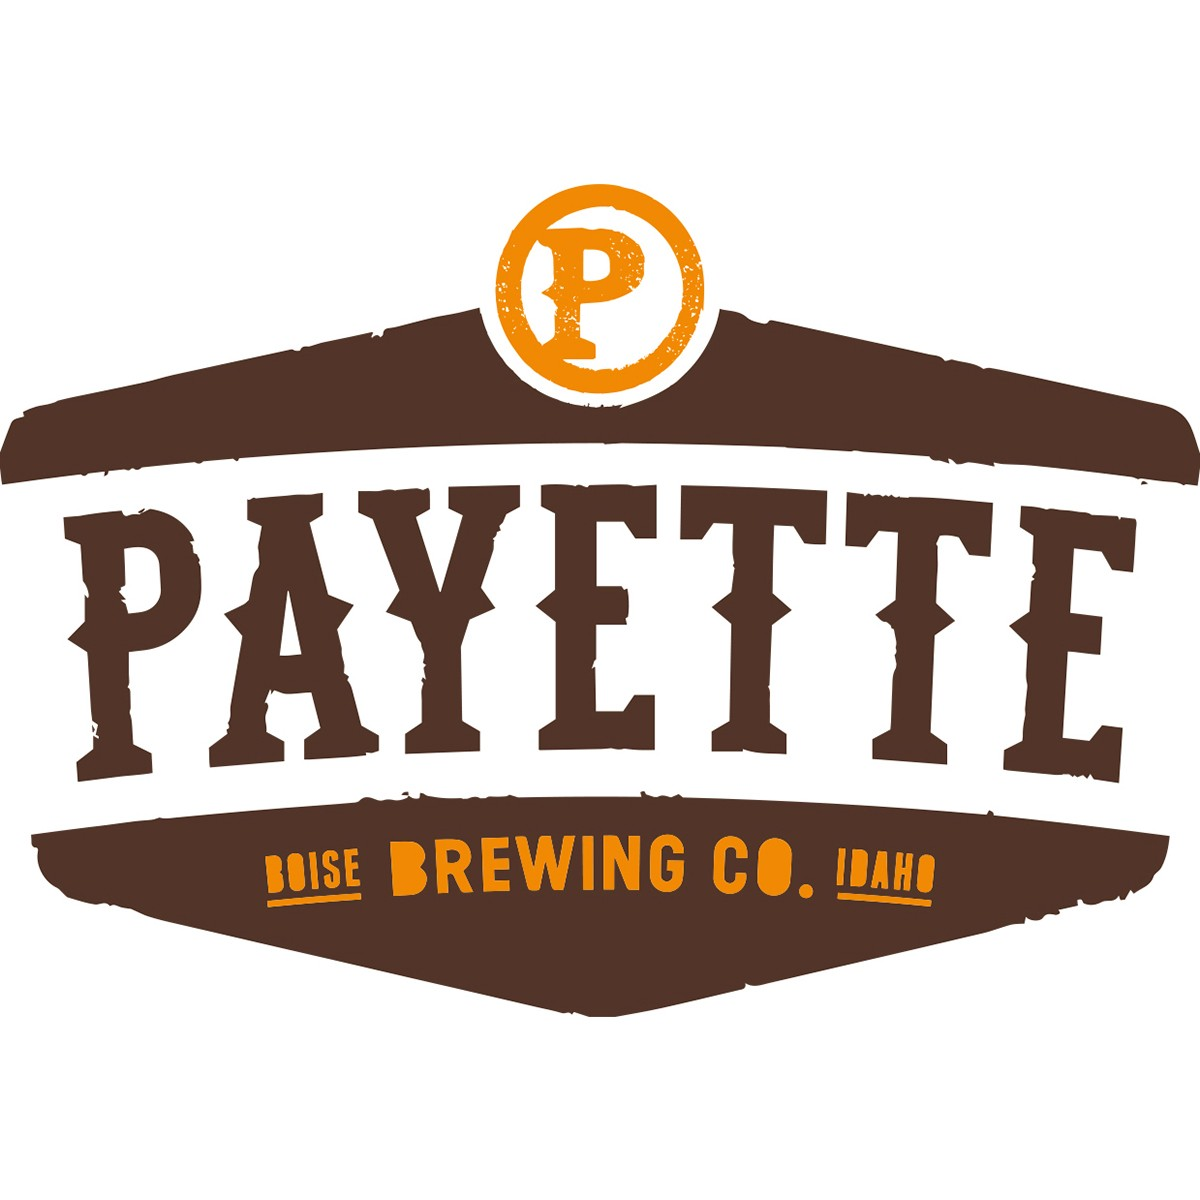 payette_brewing.jpg